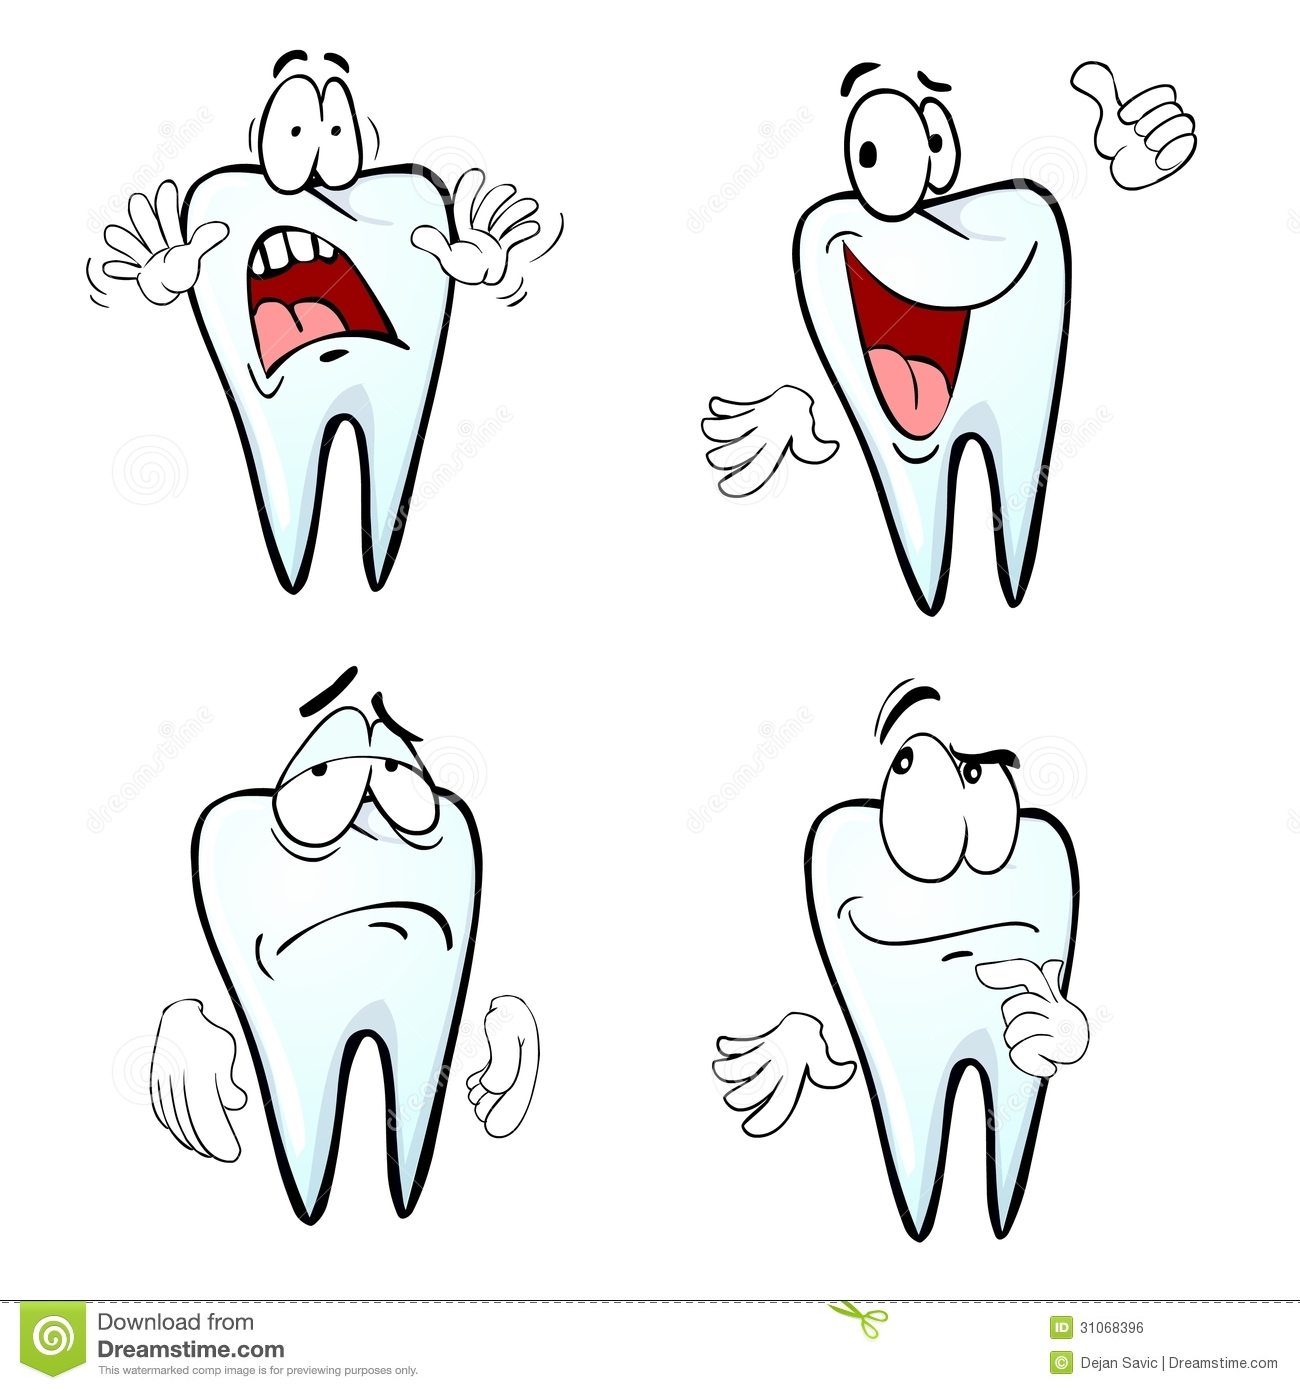 1 Toothed Cartoon Characters : Cartoon tooth emotions royalty free stock image